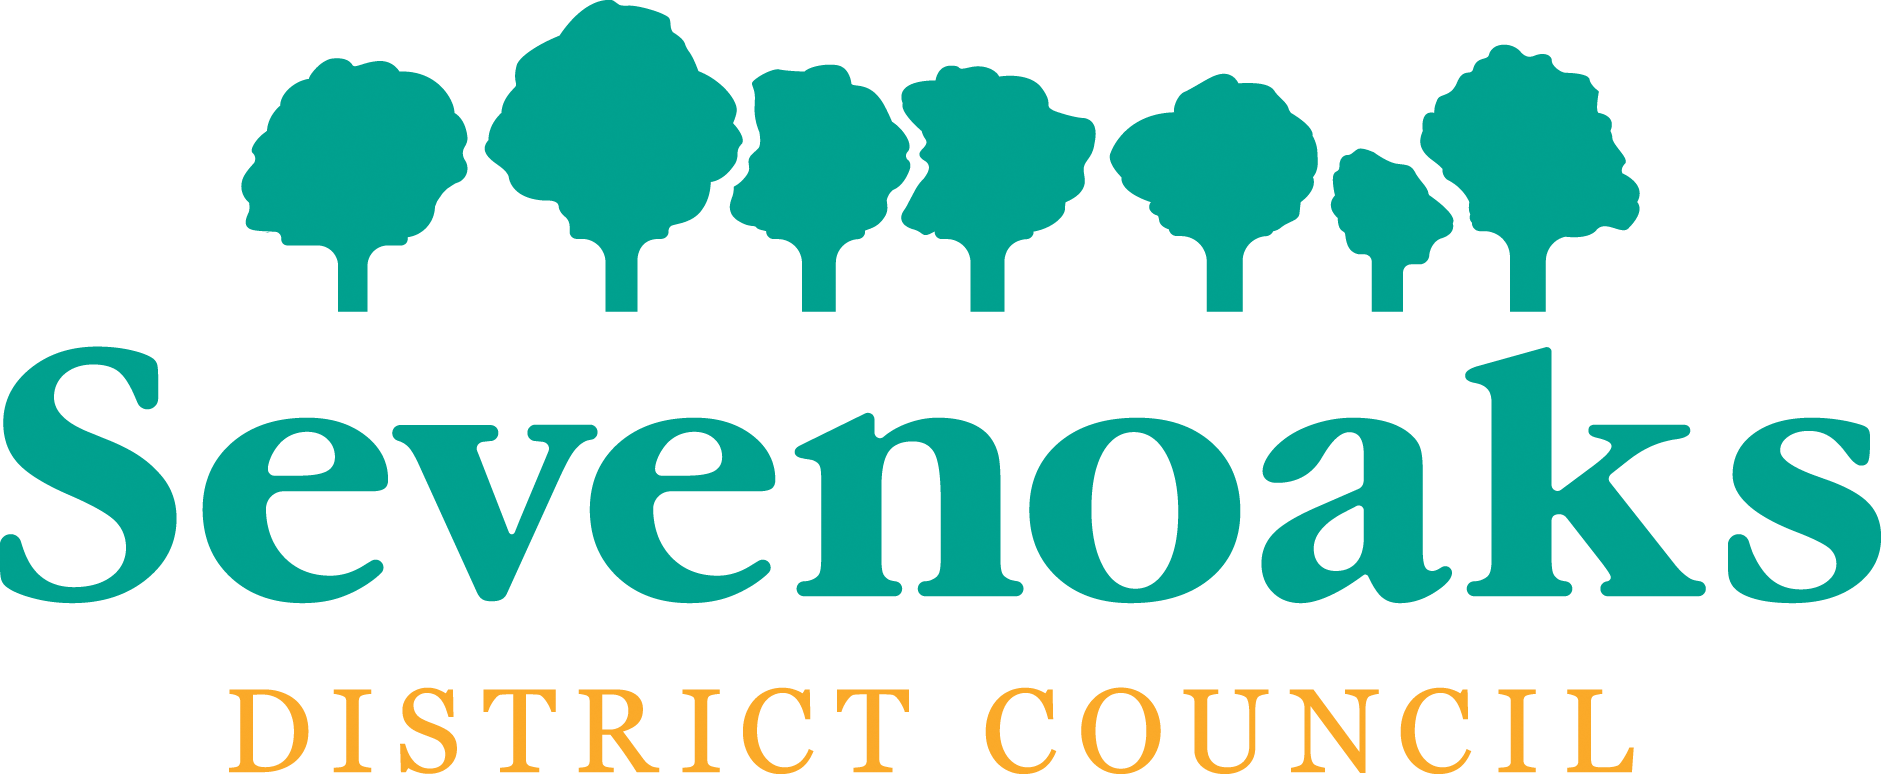 sevenoaks district